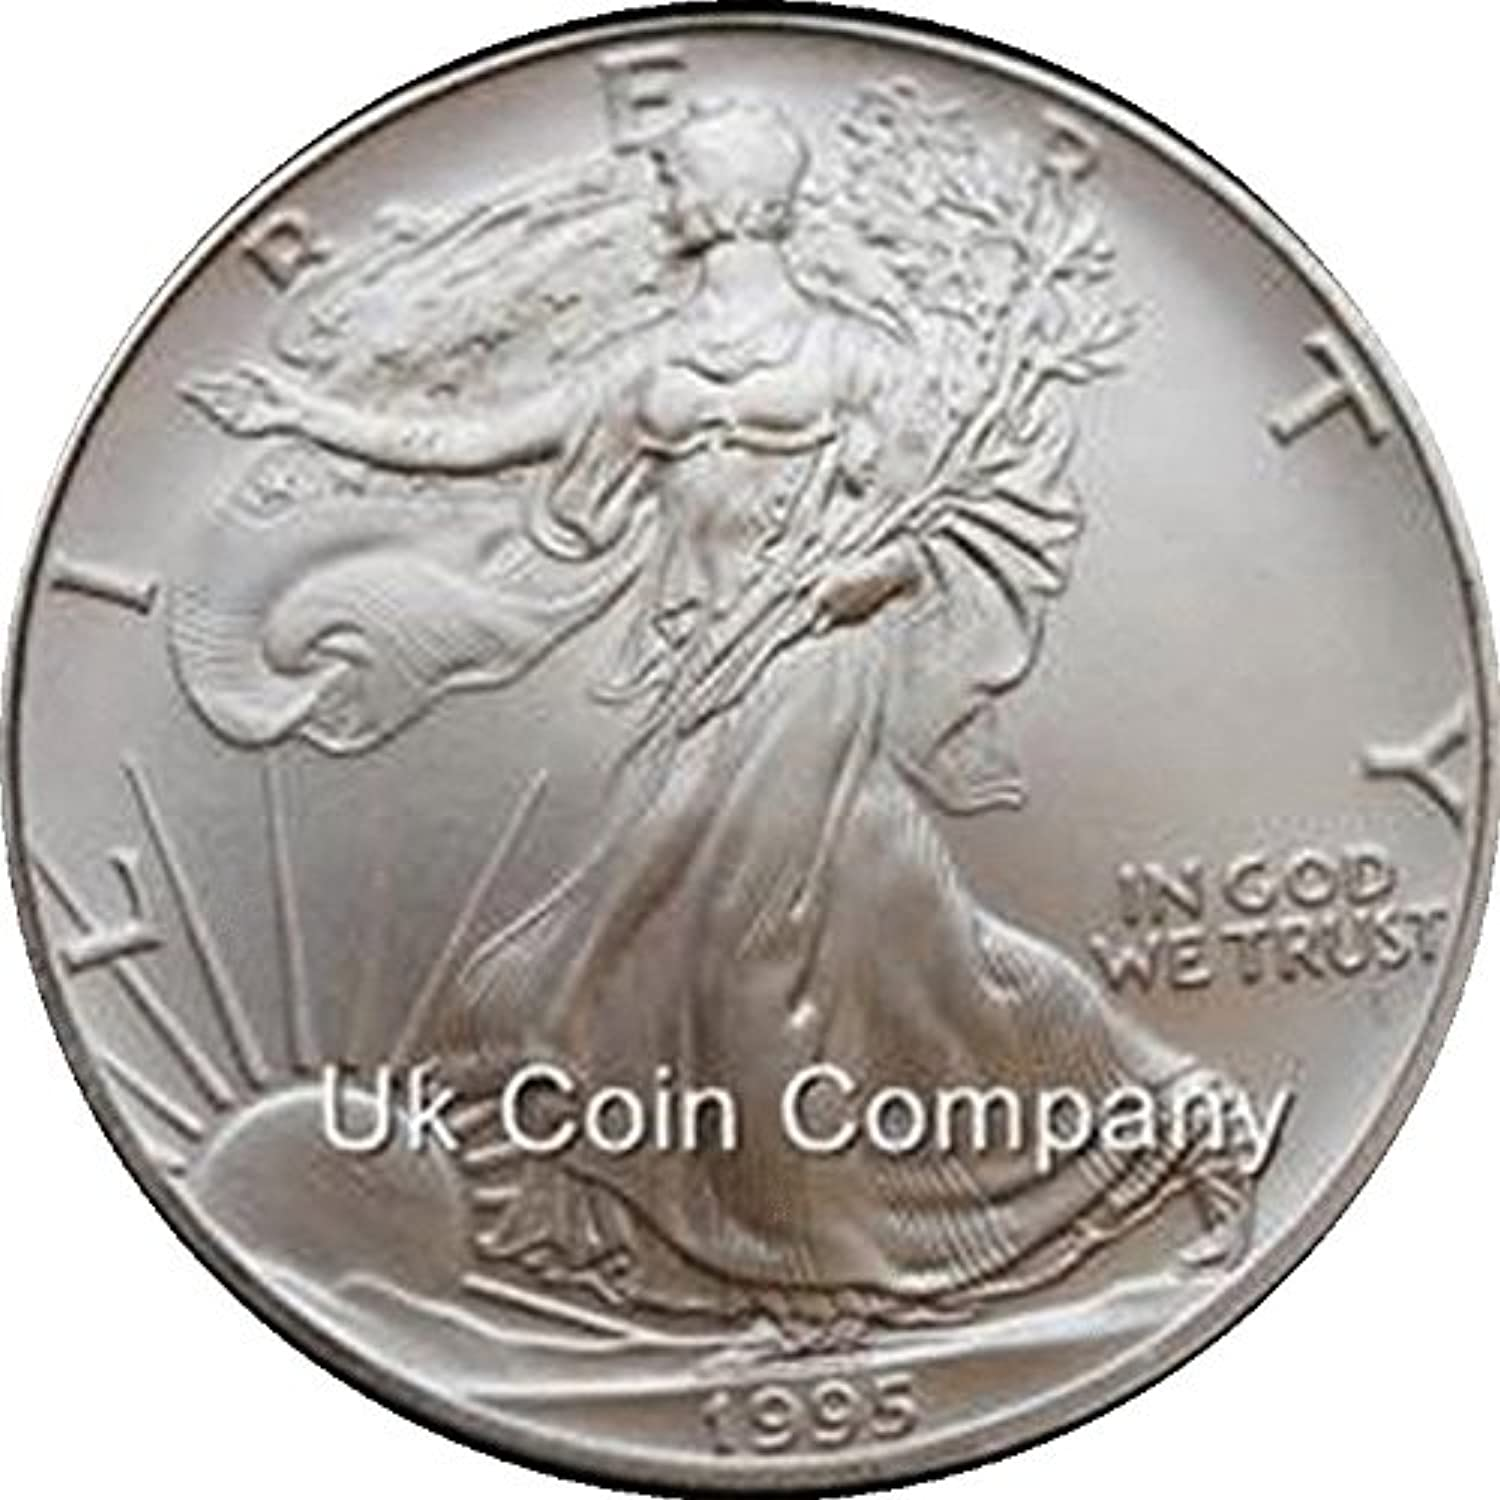 1995 Usa 1 oz Silver Liberty Eagle One Dollar Coin Low Mintage